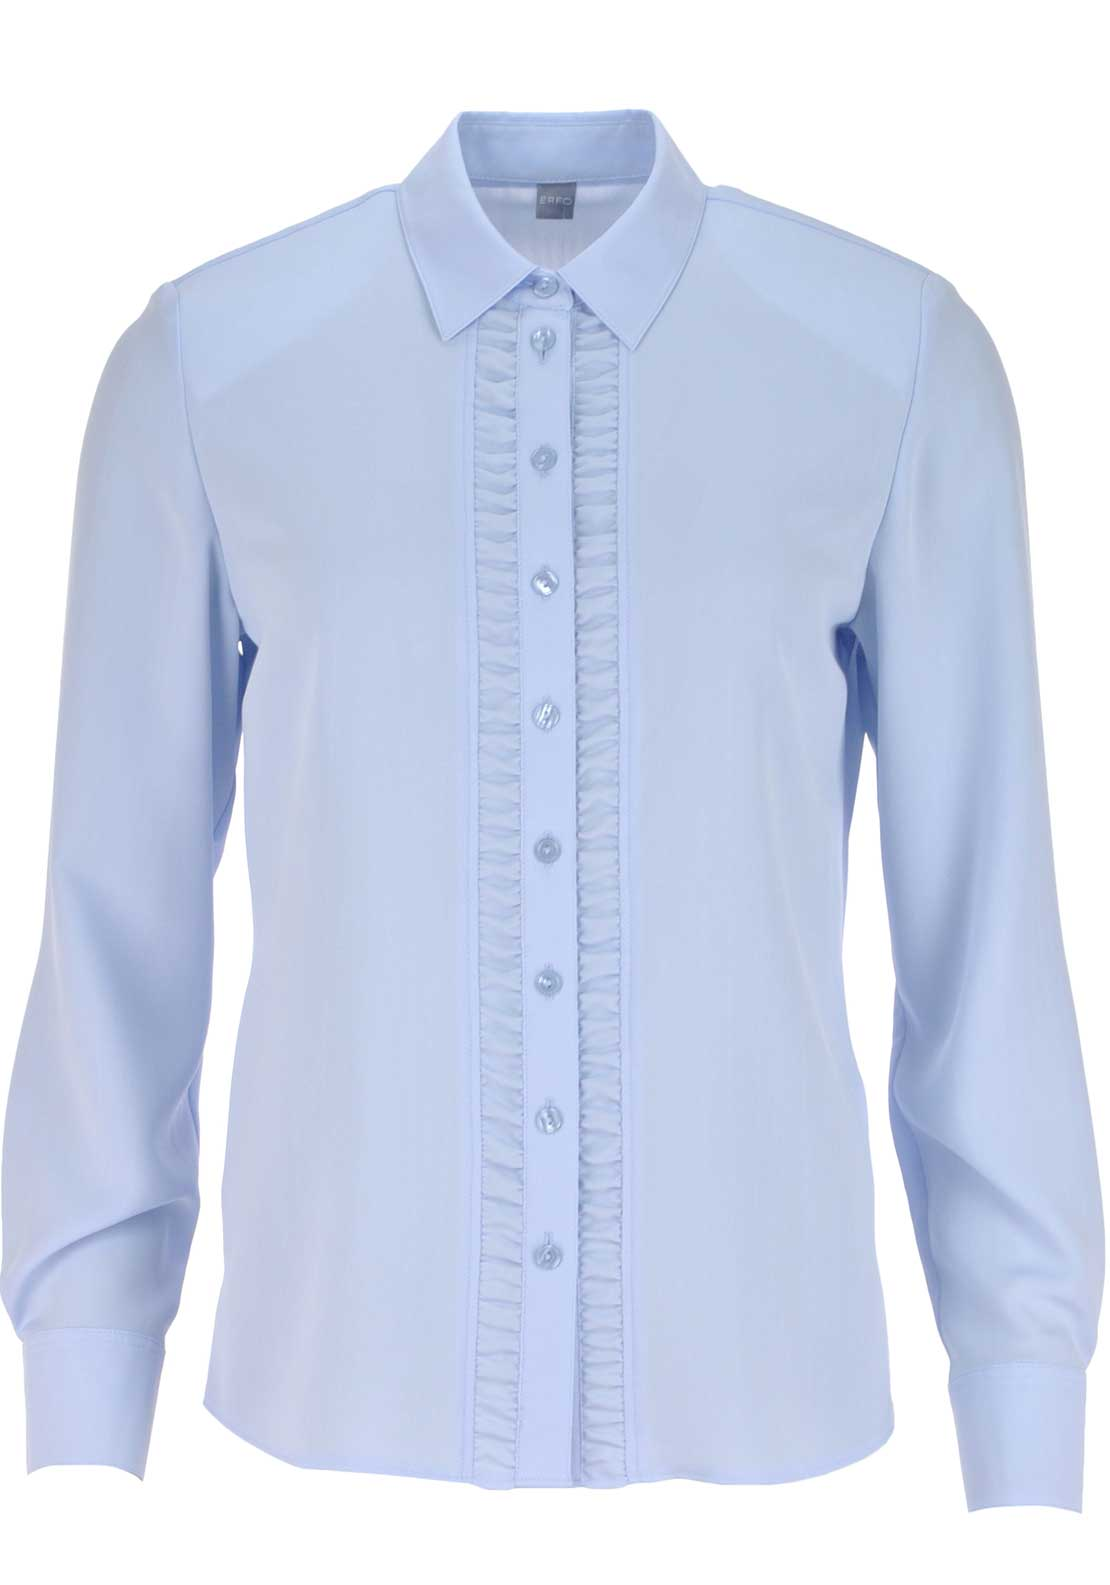 ERFO Ruffle Long Sleeve Blouse, Pale Blue